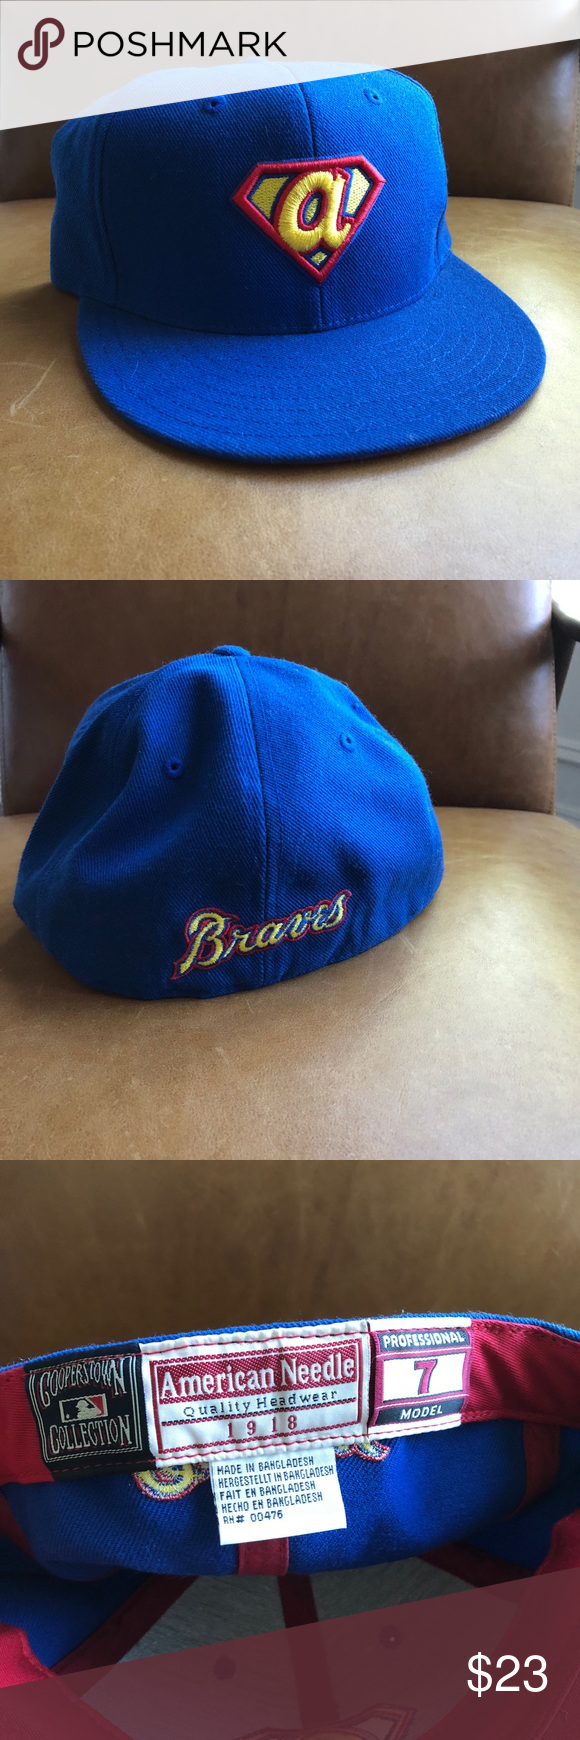 Atlanta Braves Fitted Baseball Cap Amer Needle From Mlb Cooperstown Collection American Needle Quality Headwe Fitted Baseball Caps Atlanta Braves Baseball Cap